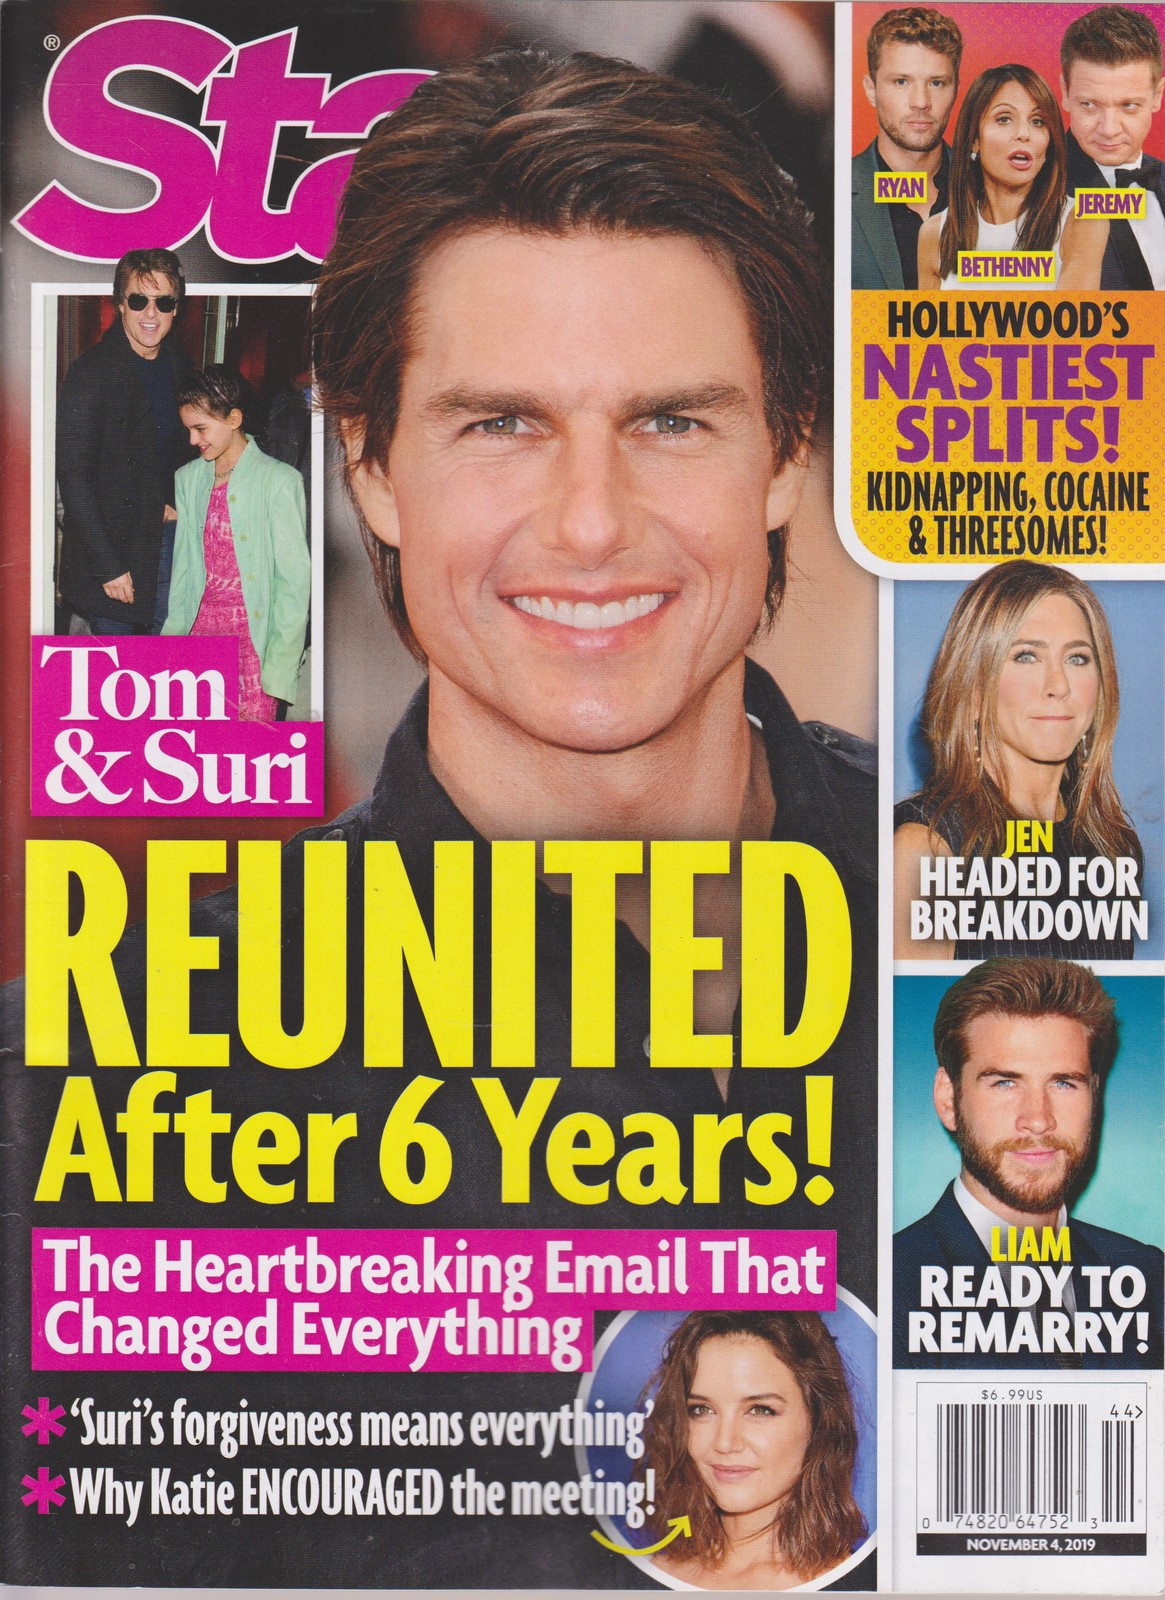 Primary image for Star Tom & Suri Reunited After 6 years Magazine November 4 2019